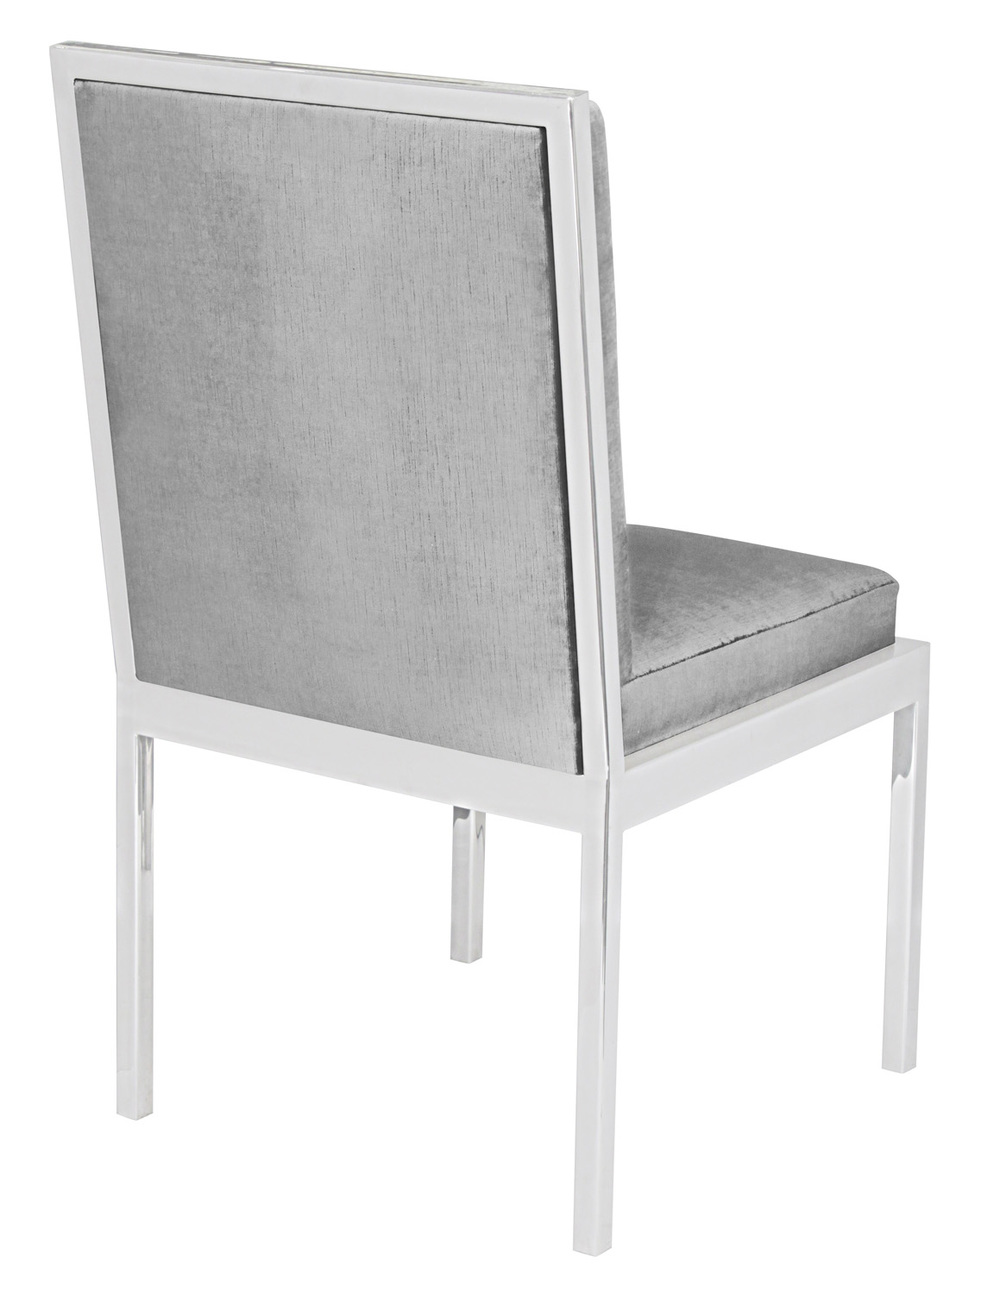 Baughman attr 120 set6 sqr chrome diningchairs166 detail4 hires.jpg